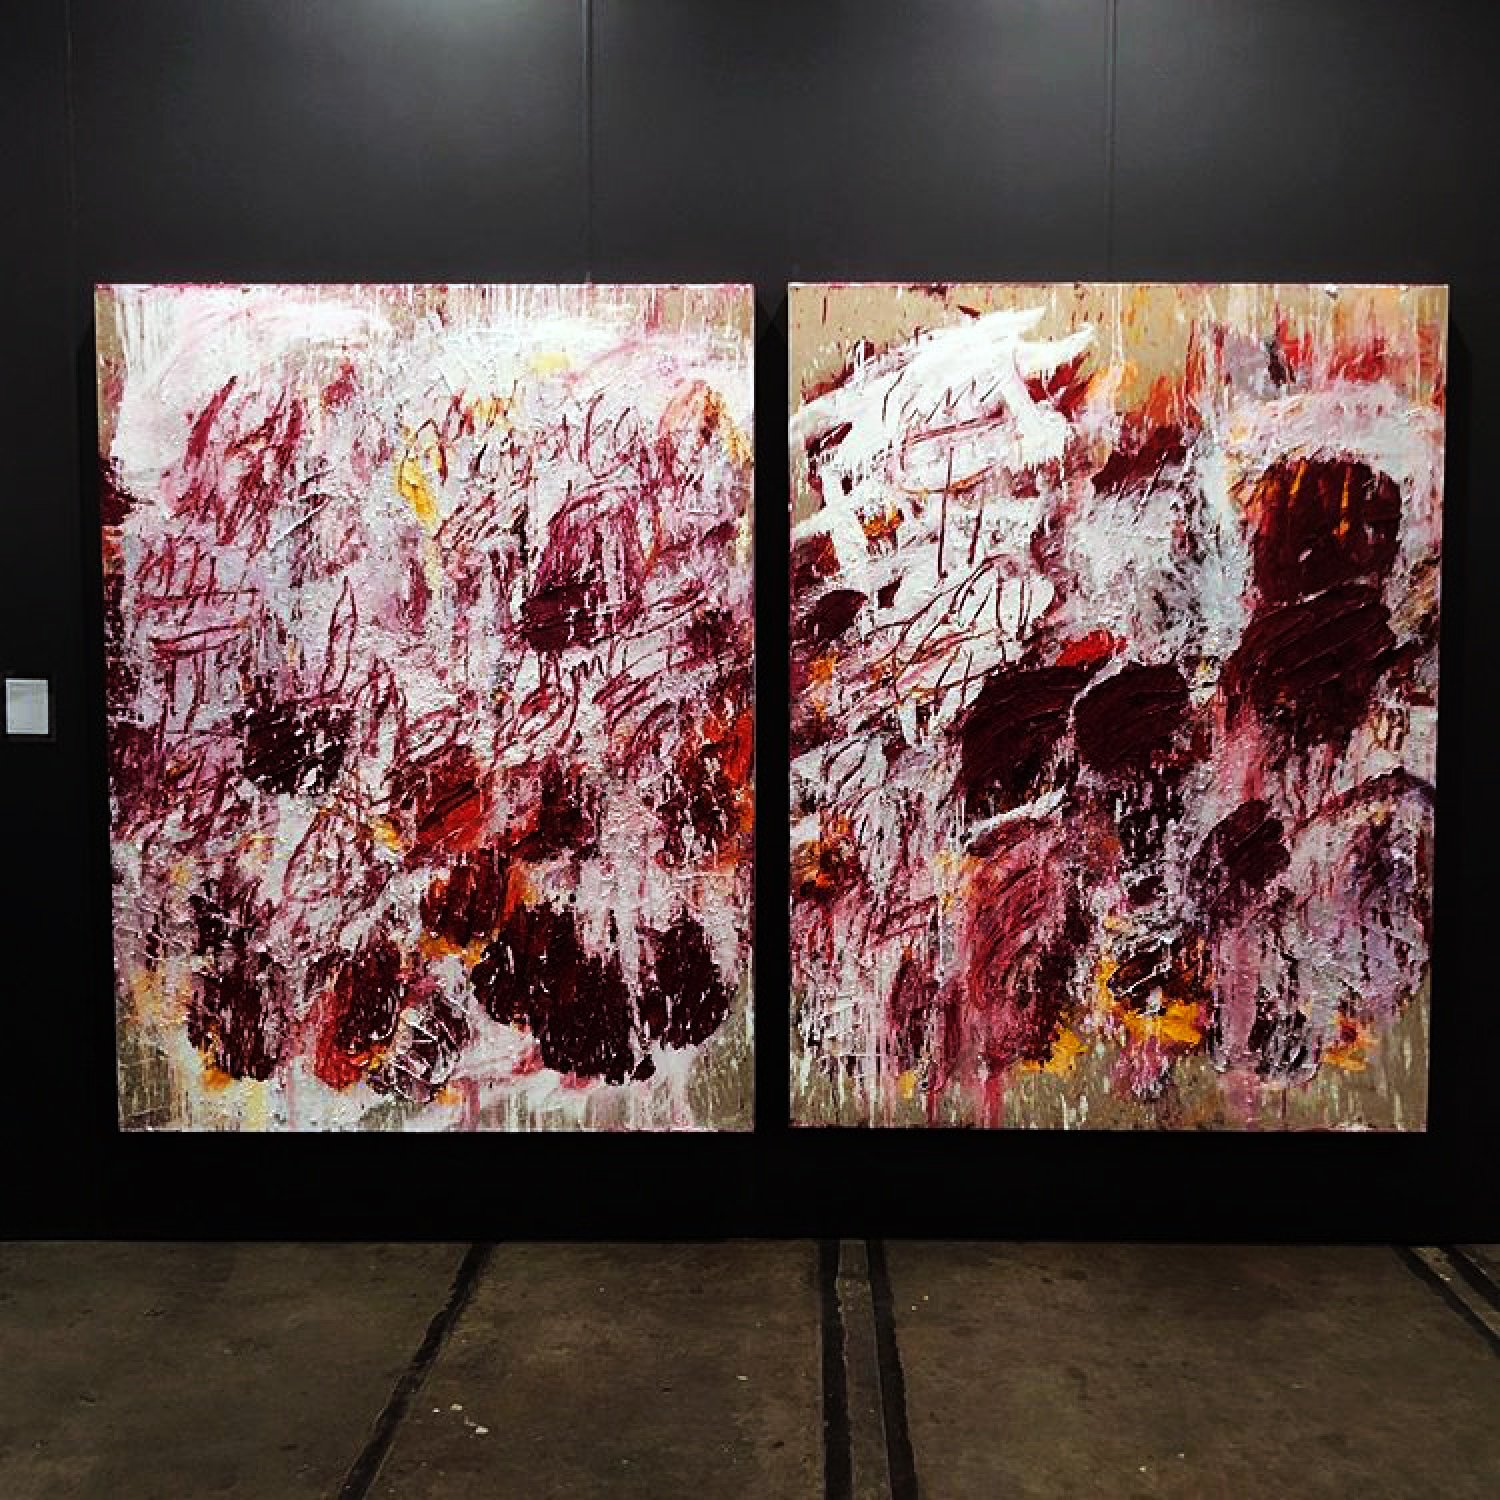 Aida Tomescu, THE OPEN WOUNDS OF WHITE CLOUDS, DIPTYCH, INSTALLATION VIEW